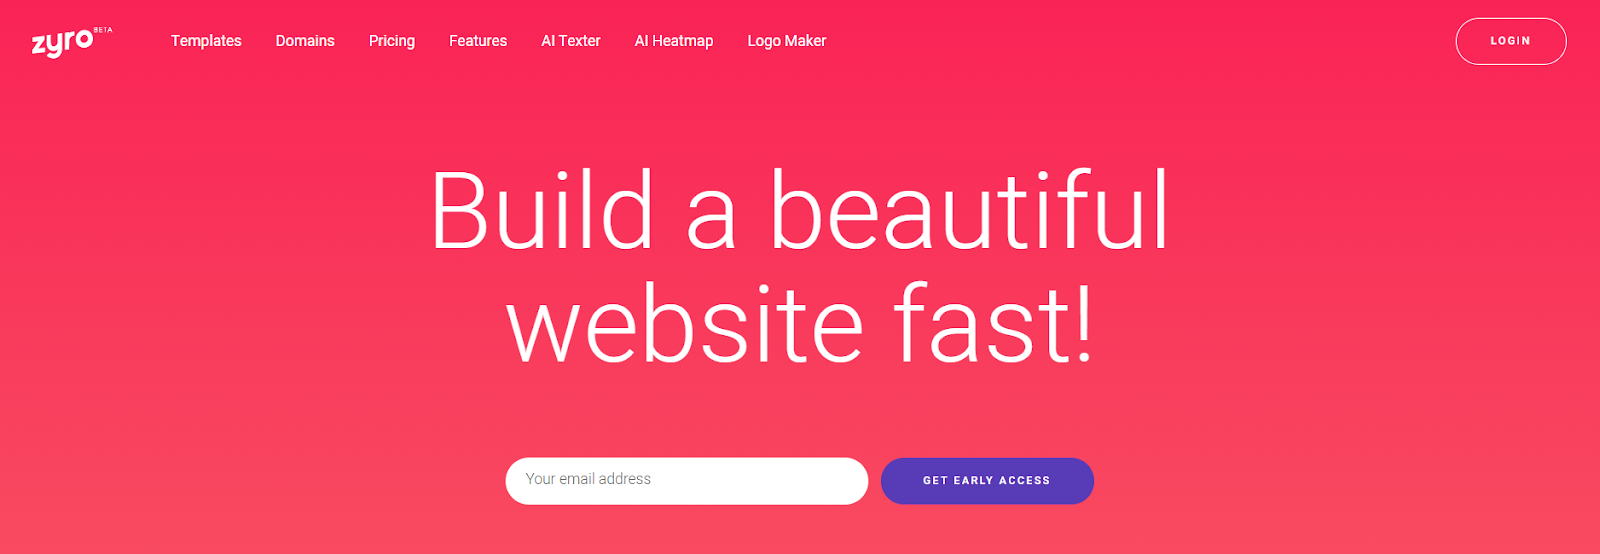 Zyro Website Builder homepage